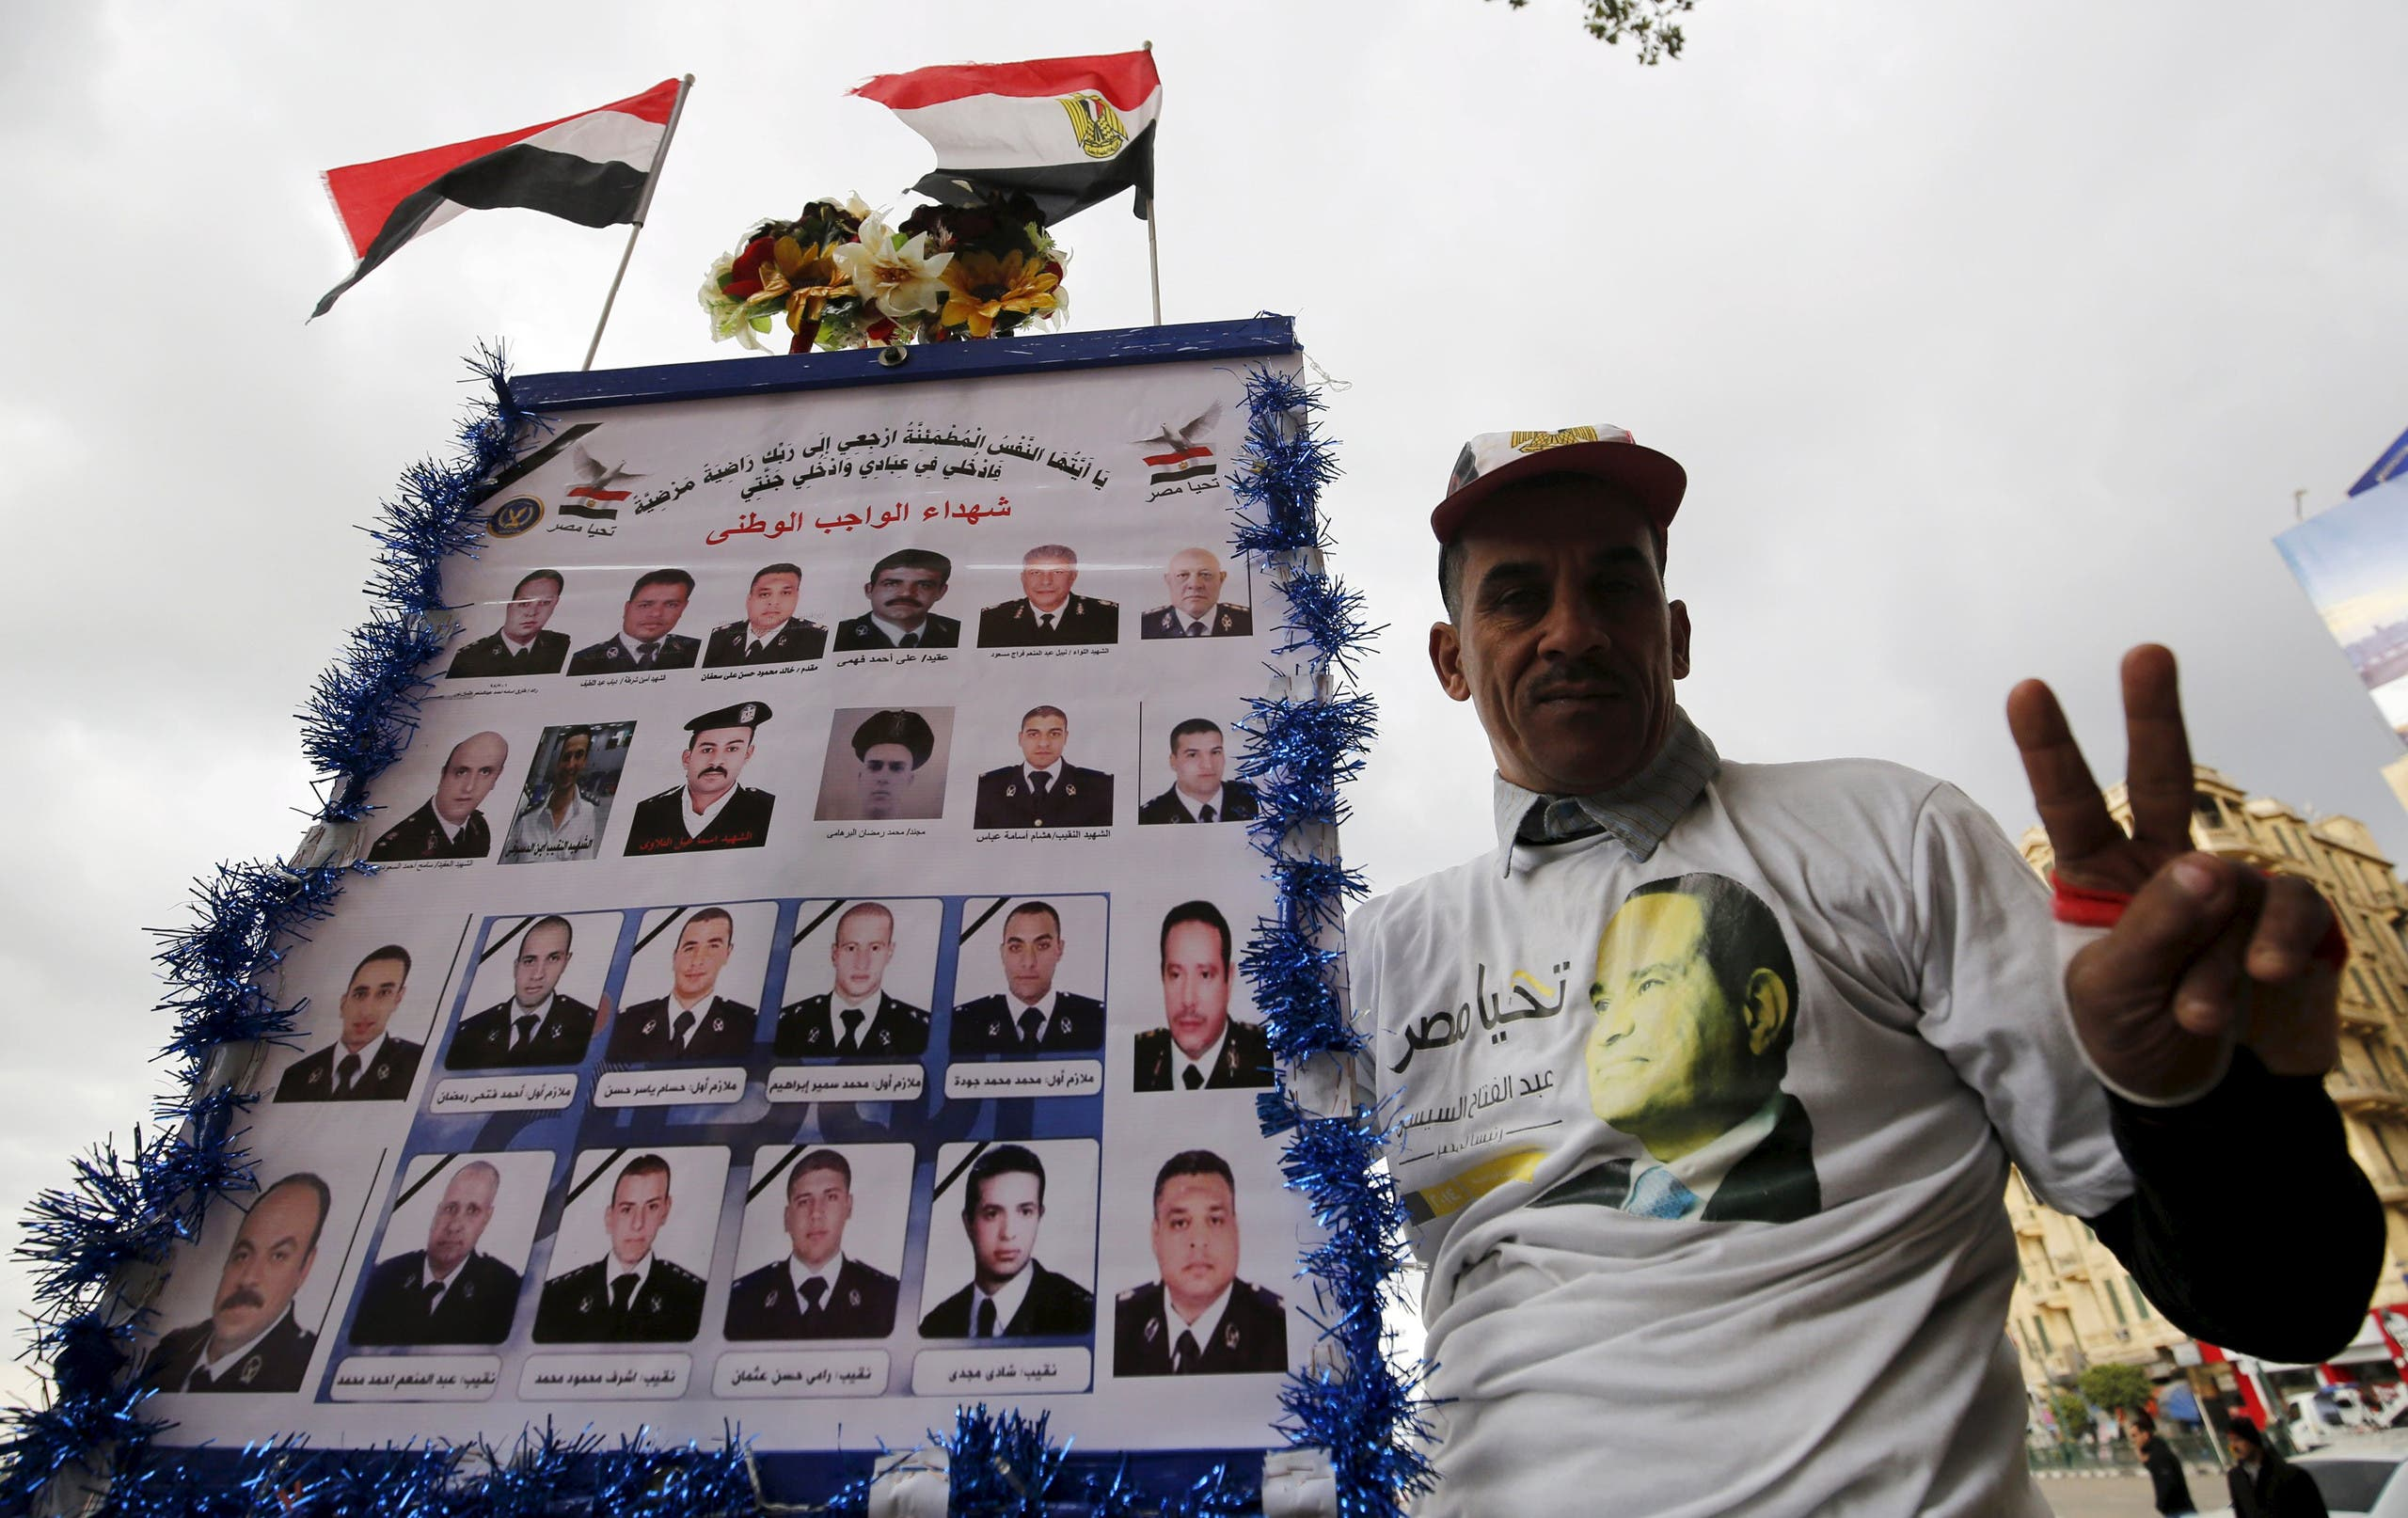 A pro-government protester chants slogans while holding a poster with pictures of martyrs police and army during the fifth anniversary of the uprising that ended the 30-year reign of Hosni Mubarak in Cairo, Egypt, January 25, 2016. REU